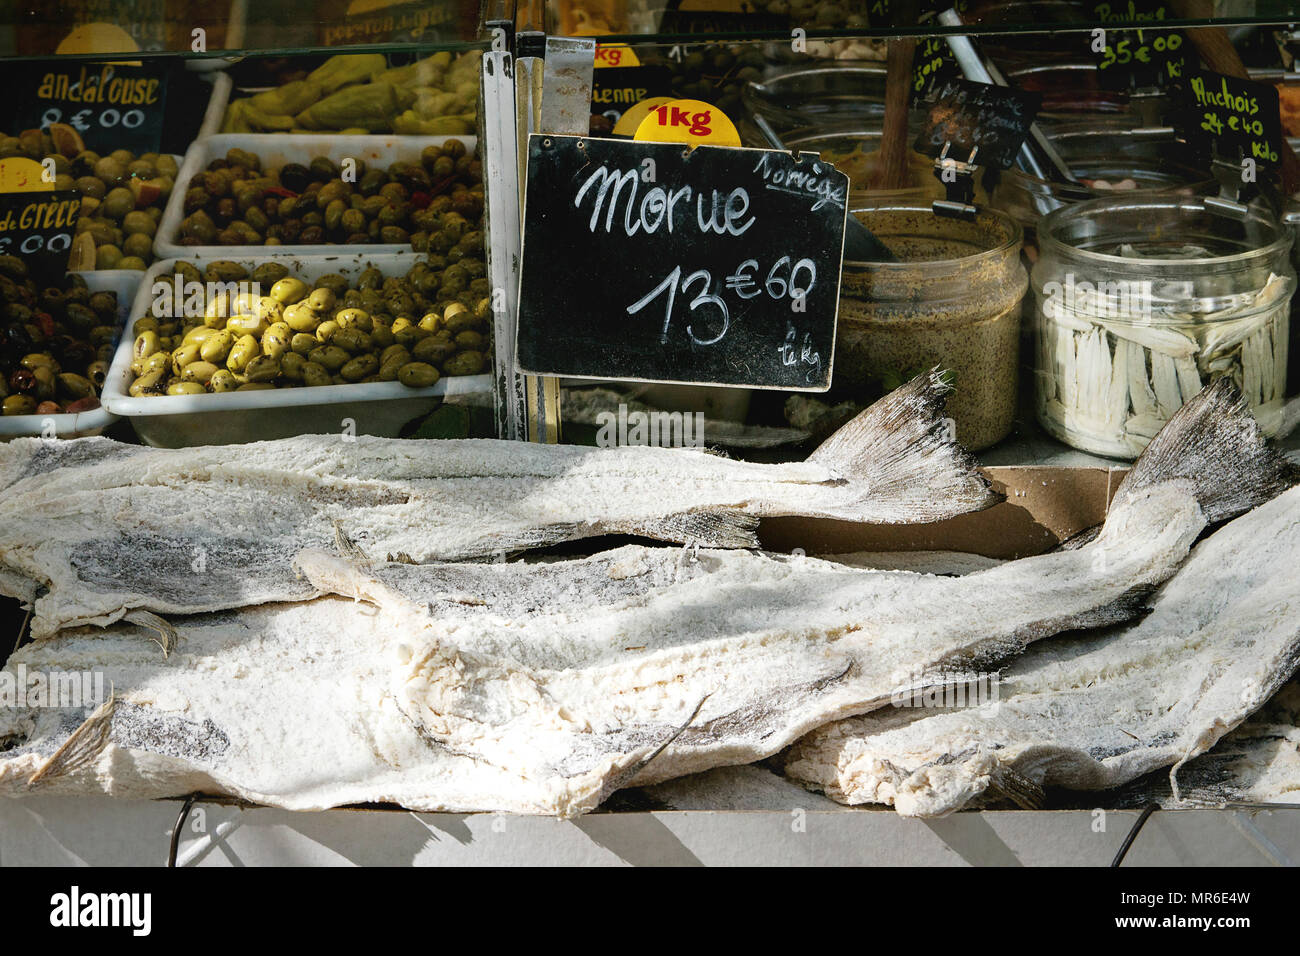 Market stall with dry salted cod fish and vegetables at Parisian street farmers market. - Stock Image